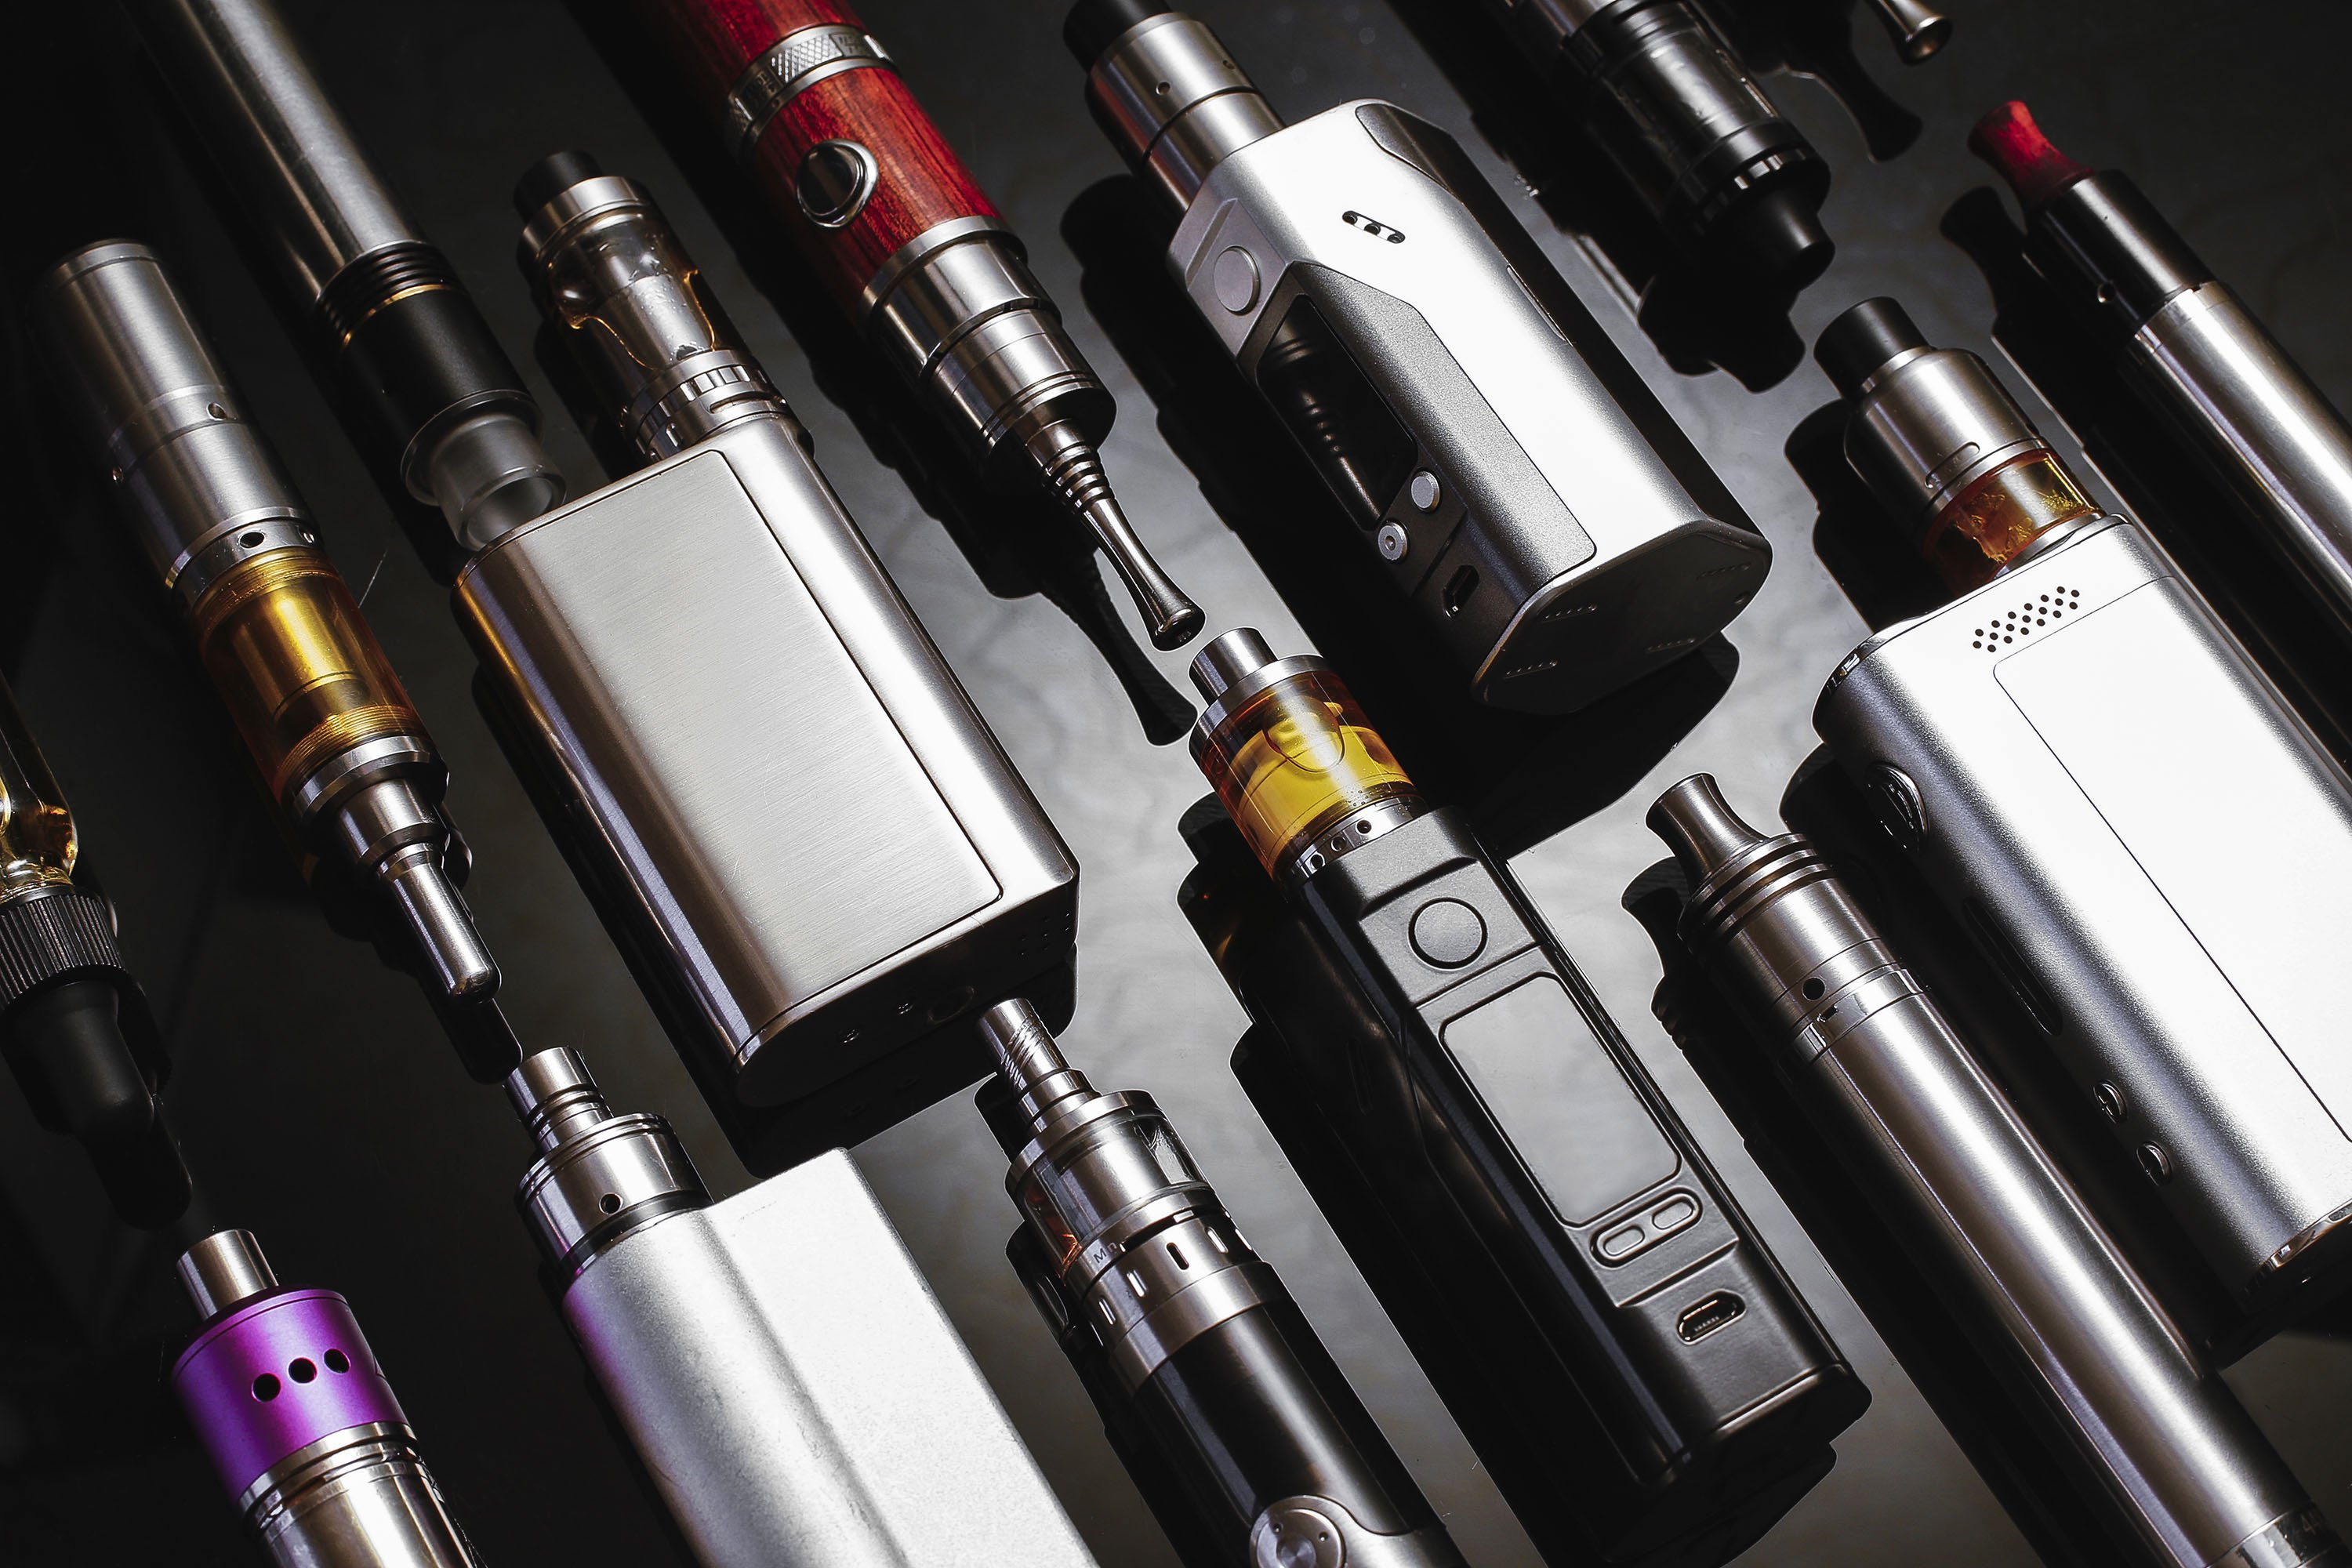 A Guide To Buying the Best e-Cig Mod